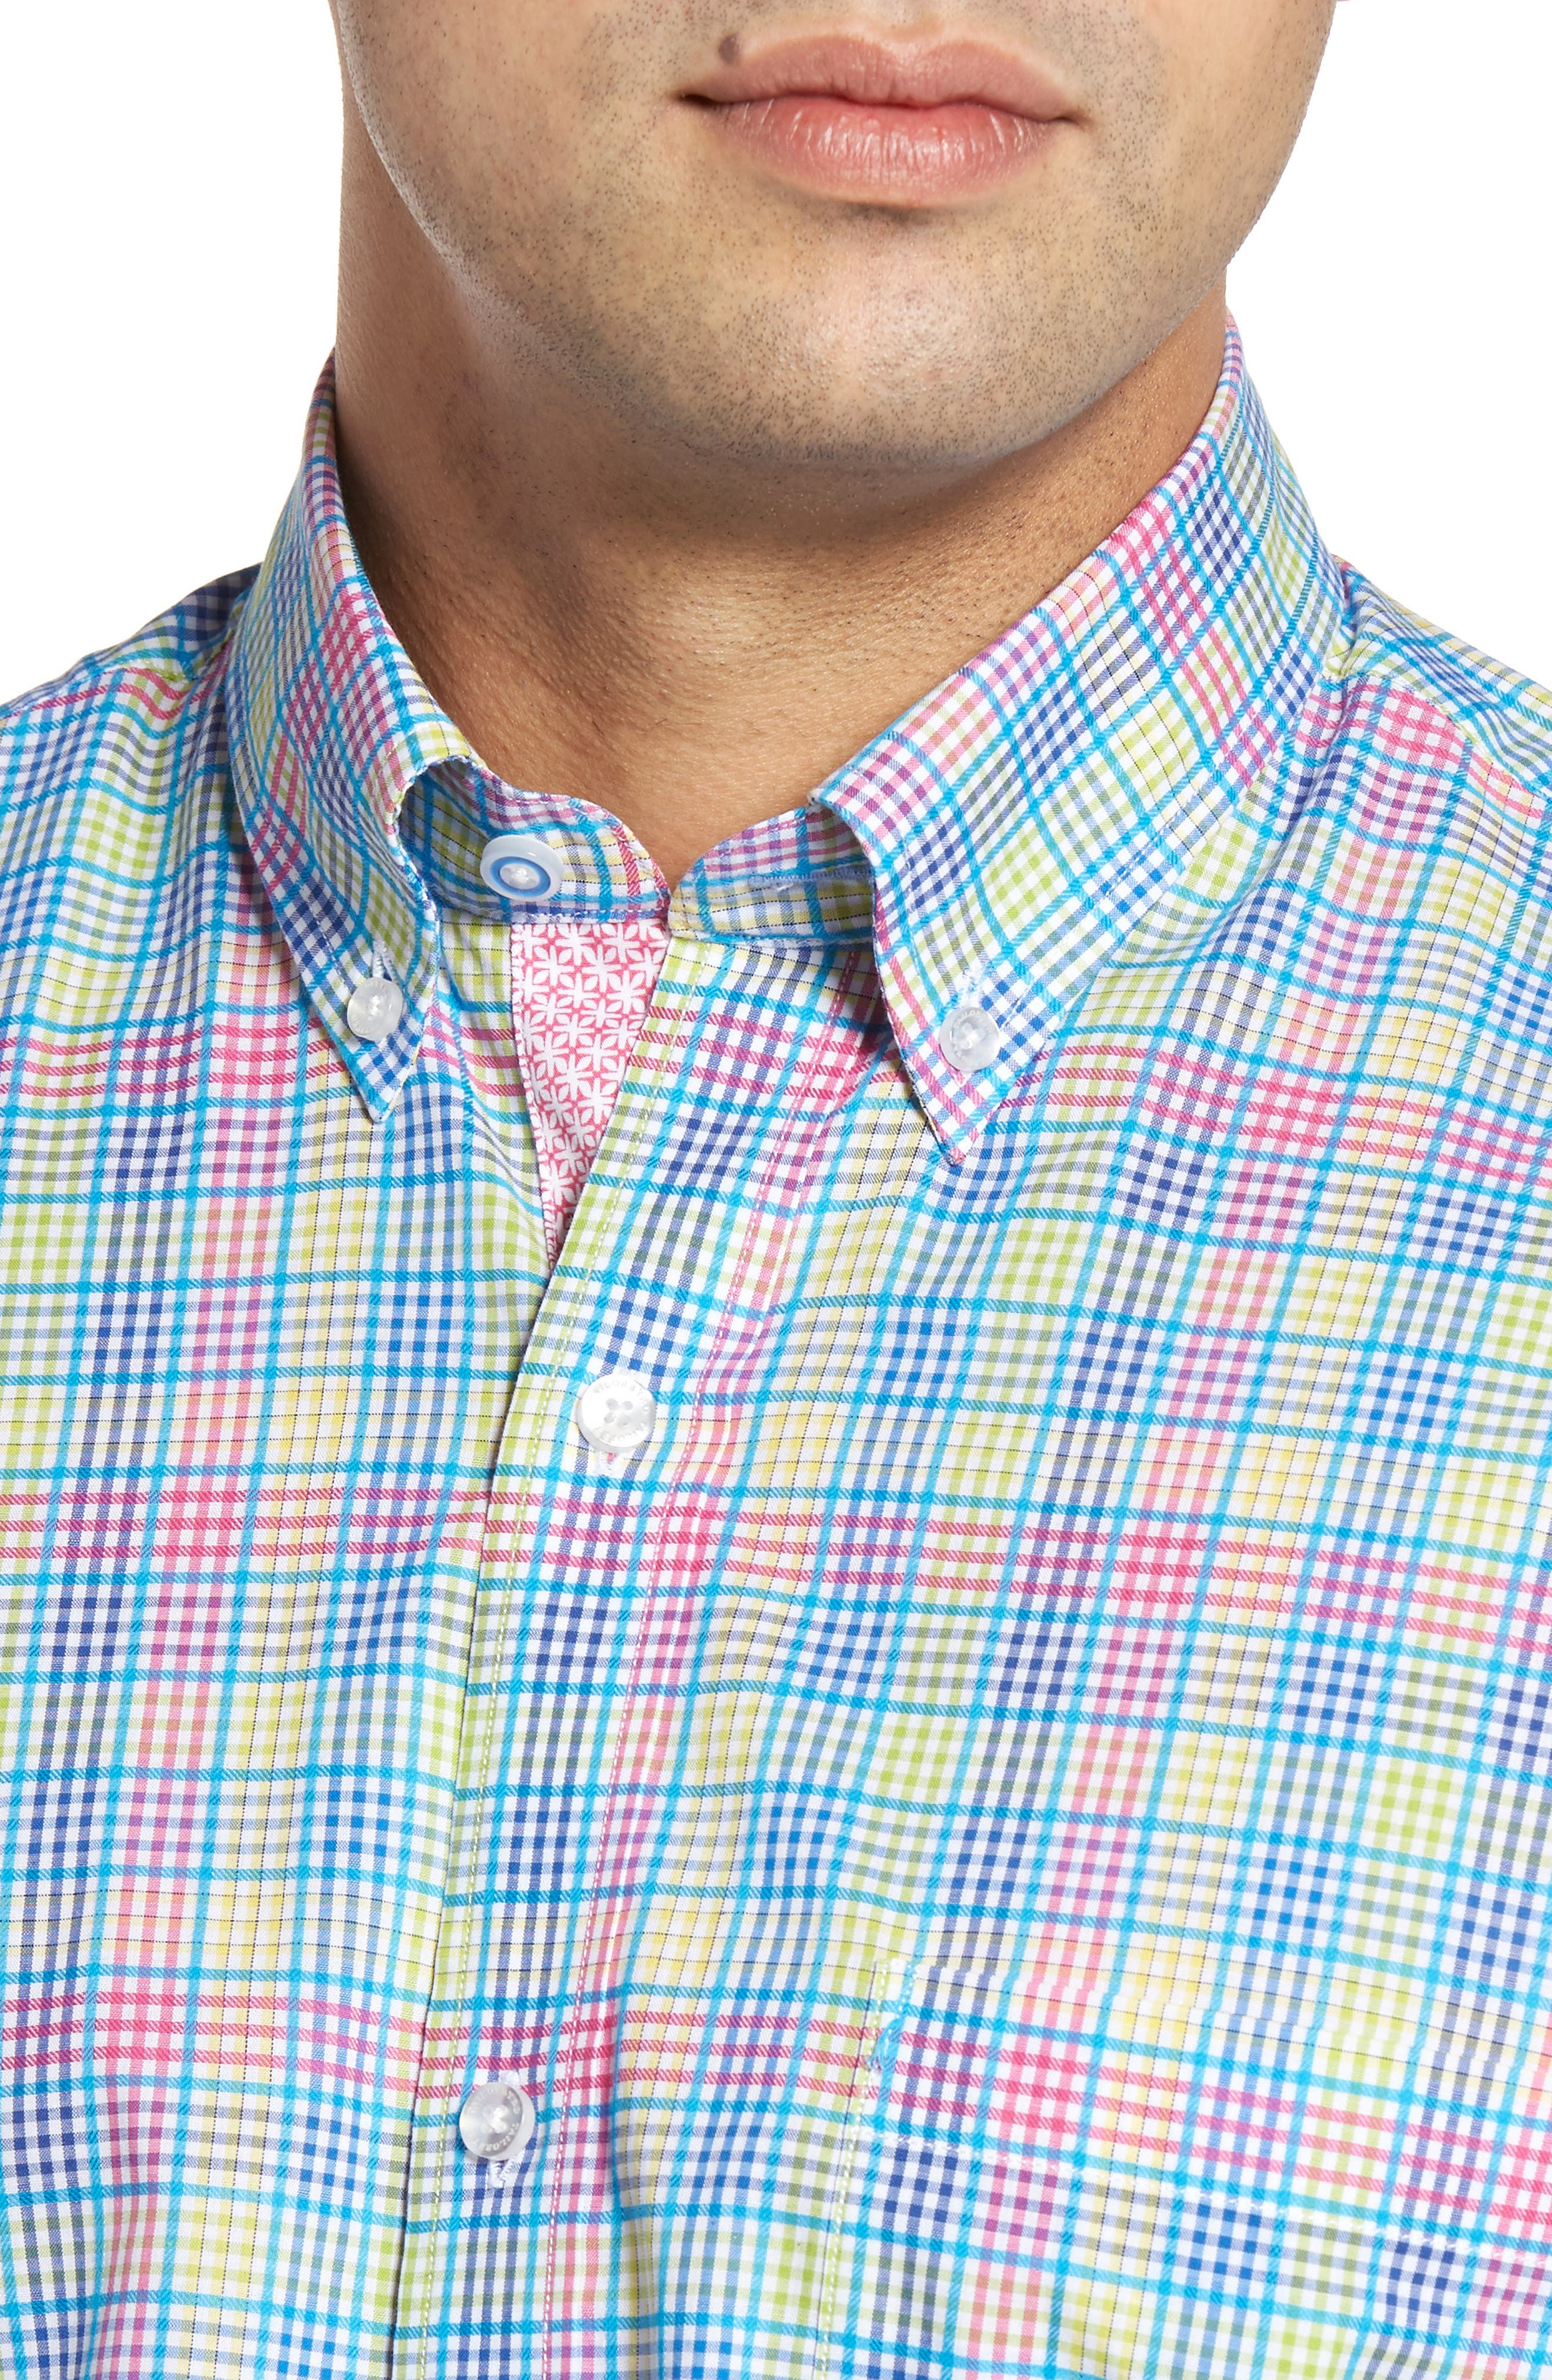 Peachleaf Sport Shirt,                             Alternate thumbnail 4, color,                             Blue/ Lime